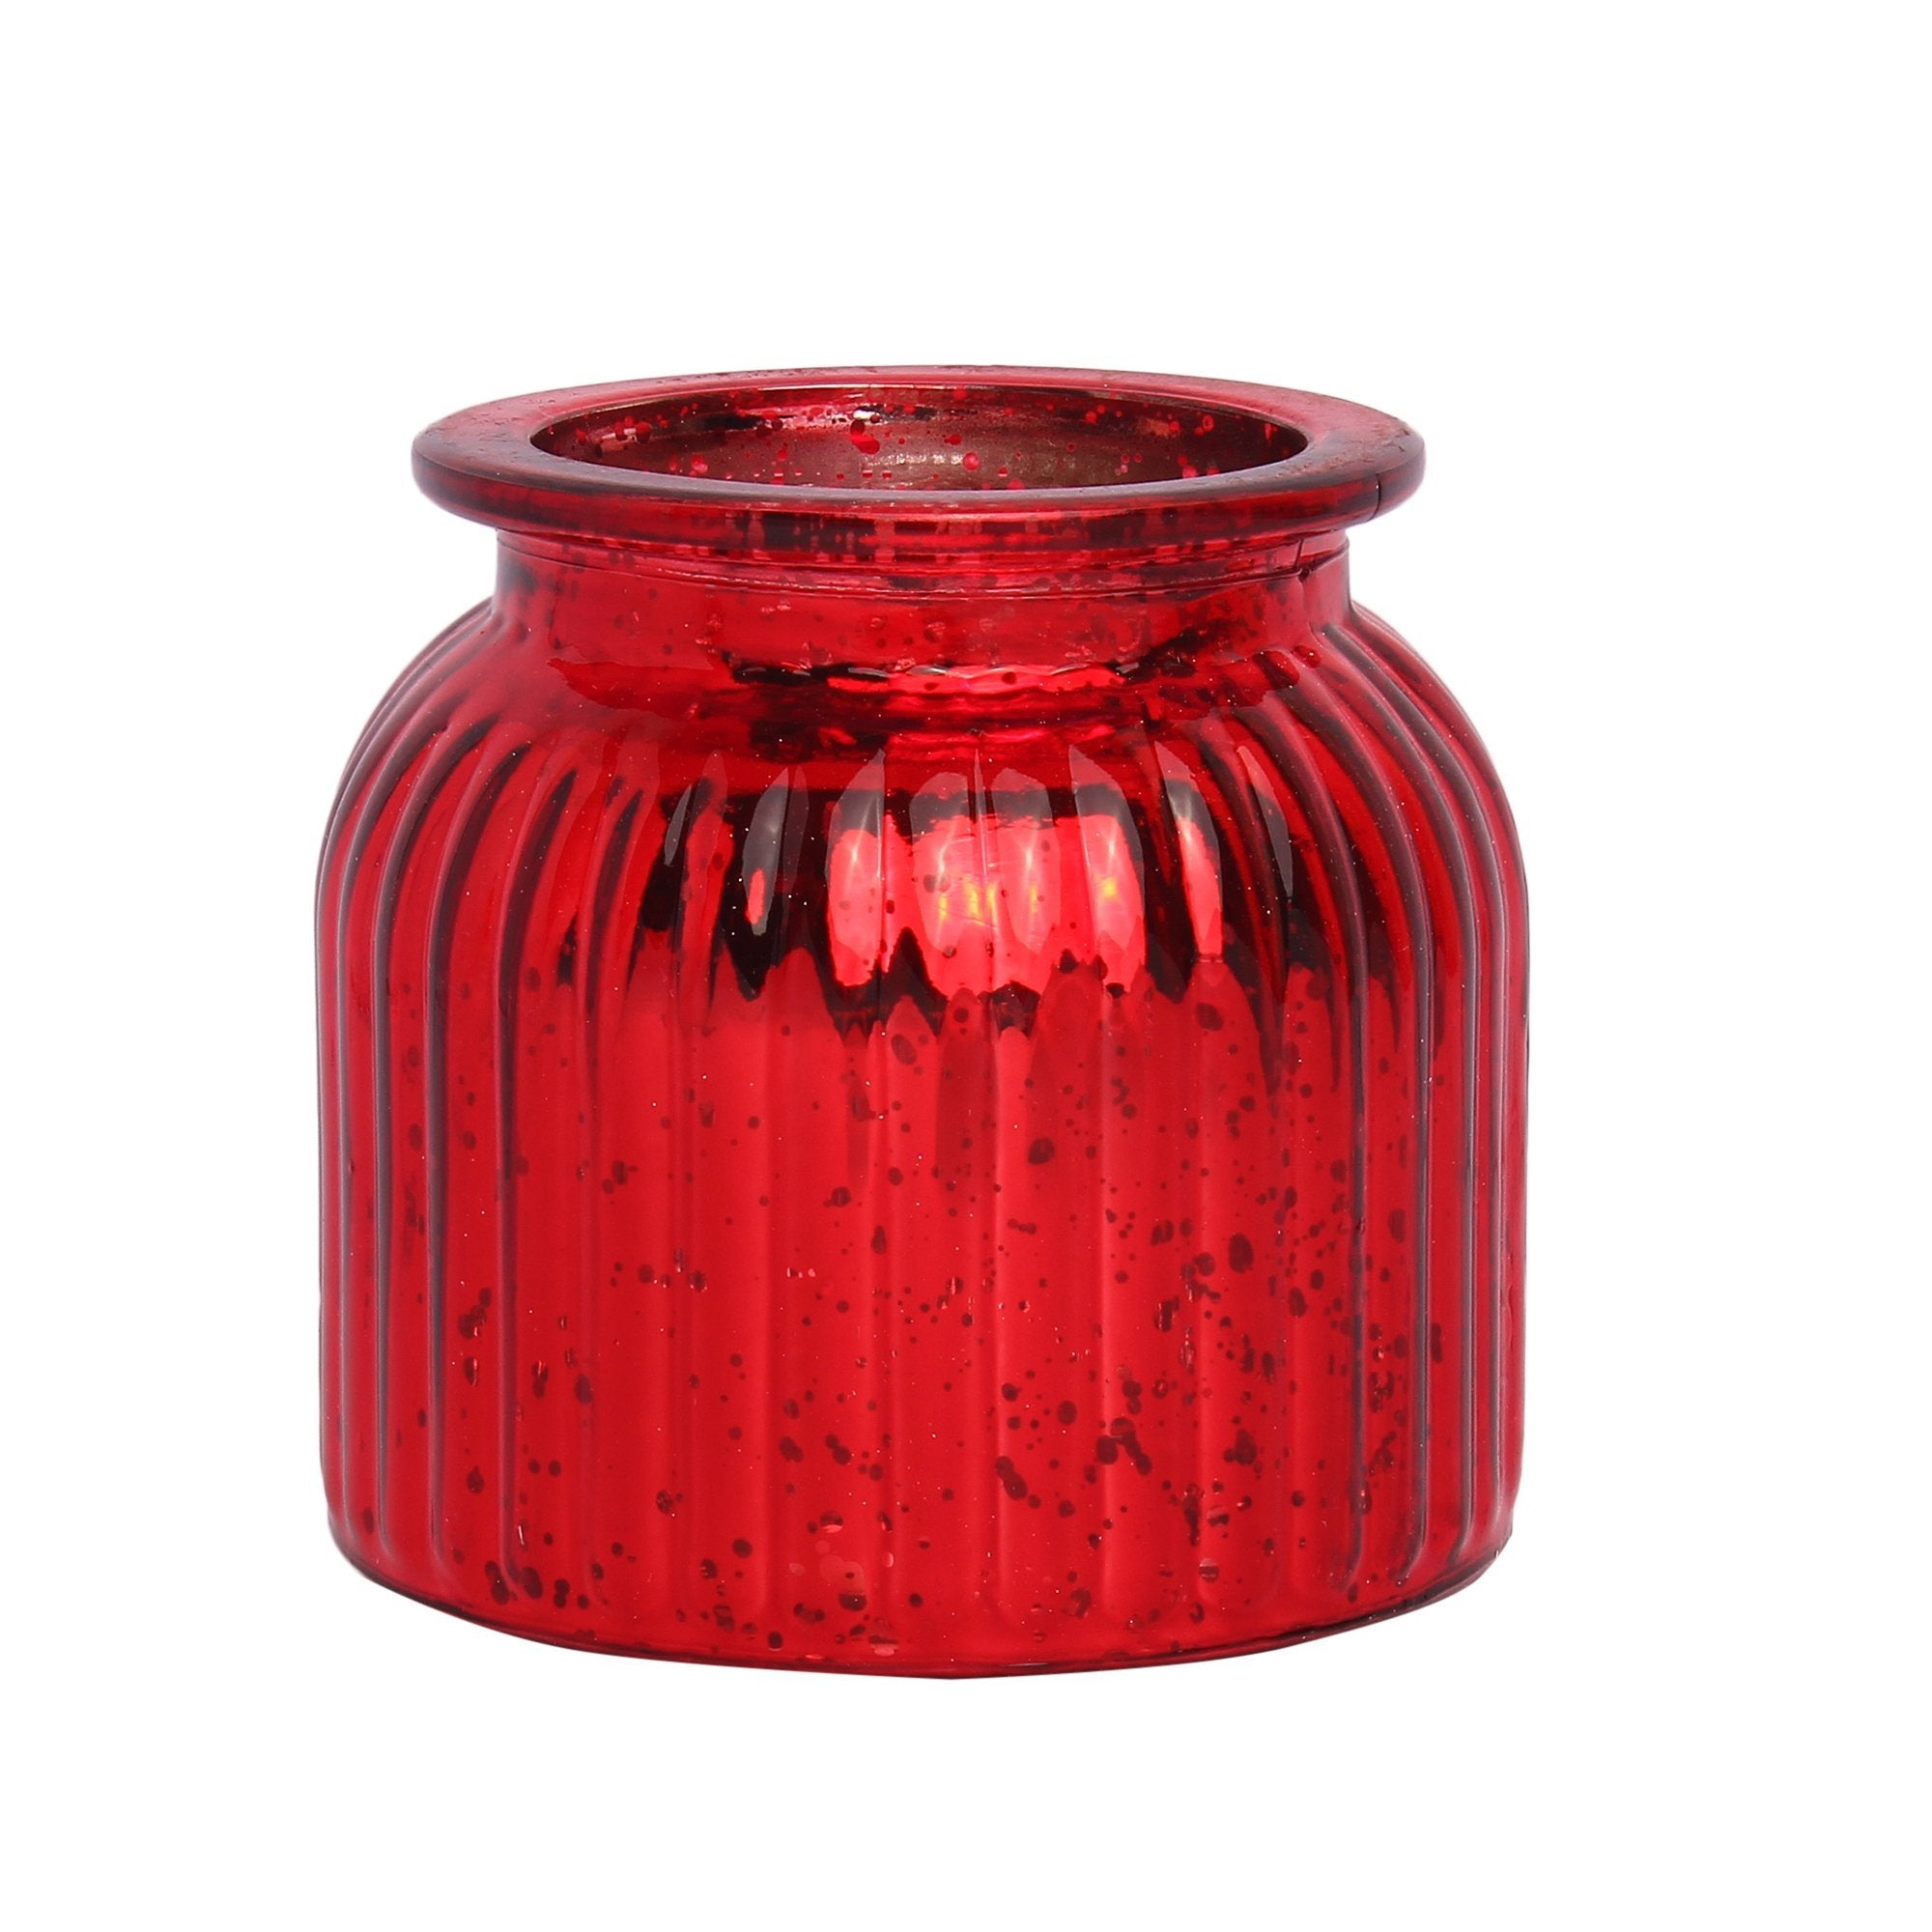 Designer Pot For Light Red